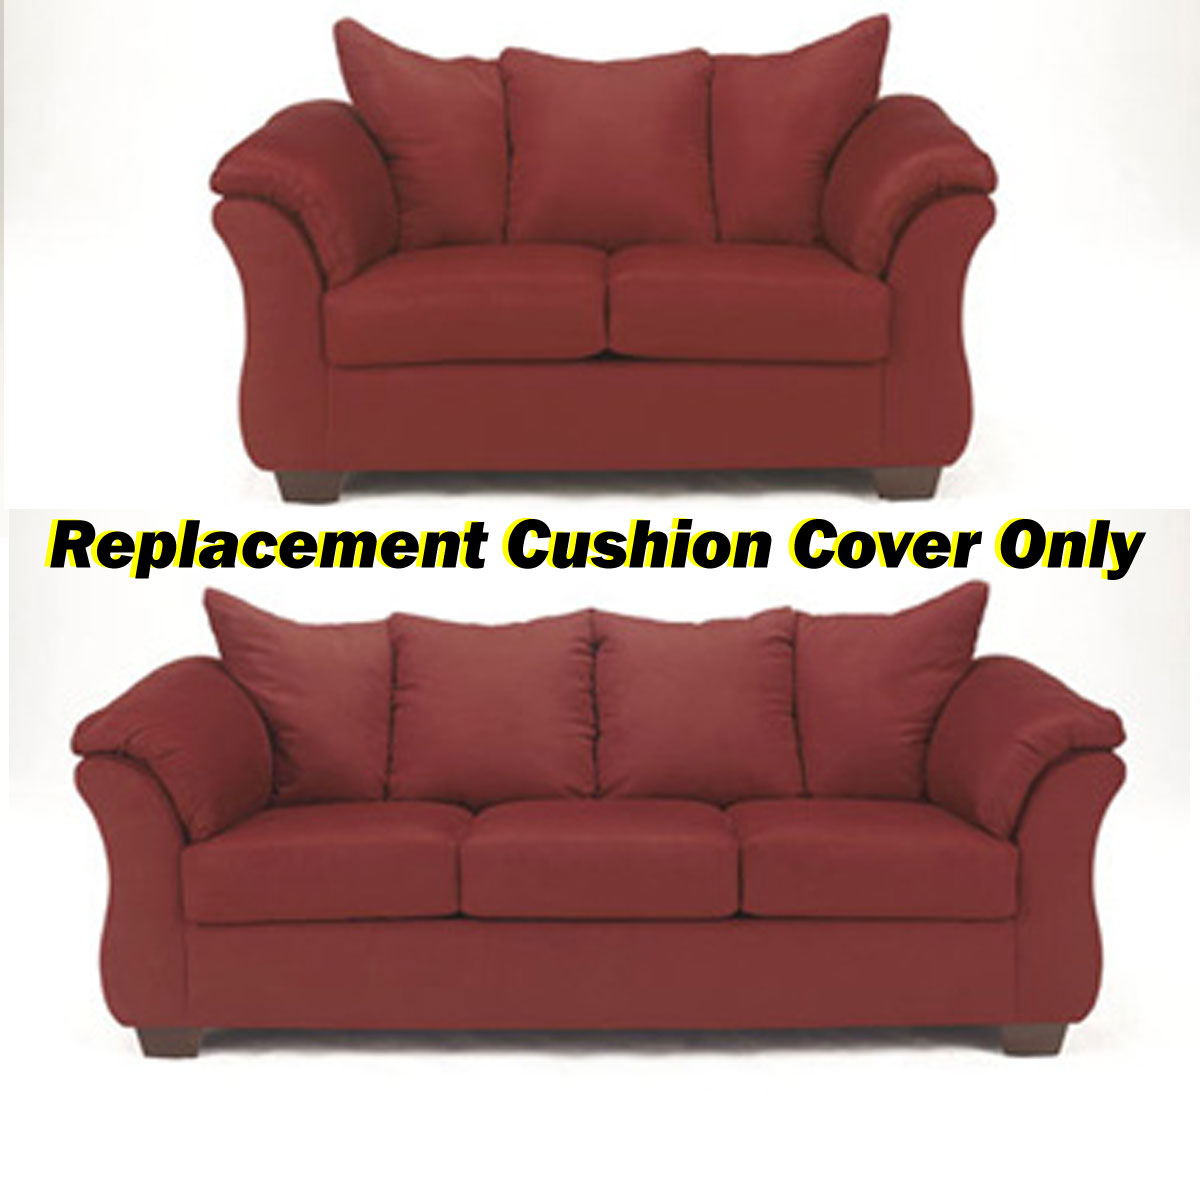 how to replace sofa cushion covers furniture bed uk ashley darcy replacement cover only 7500138 or